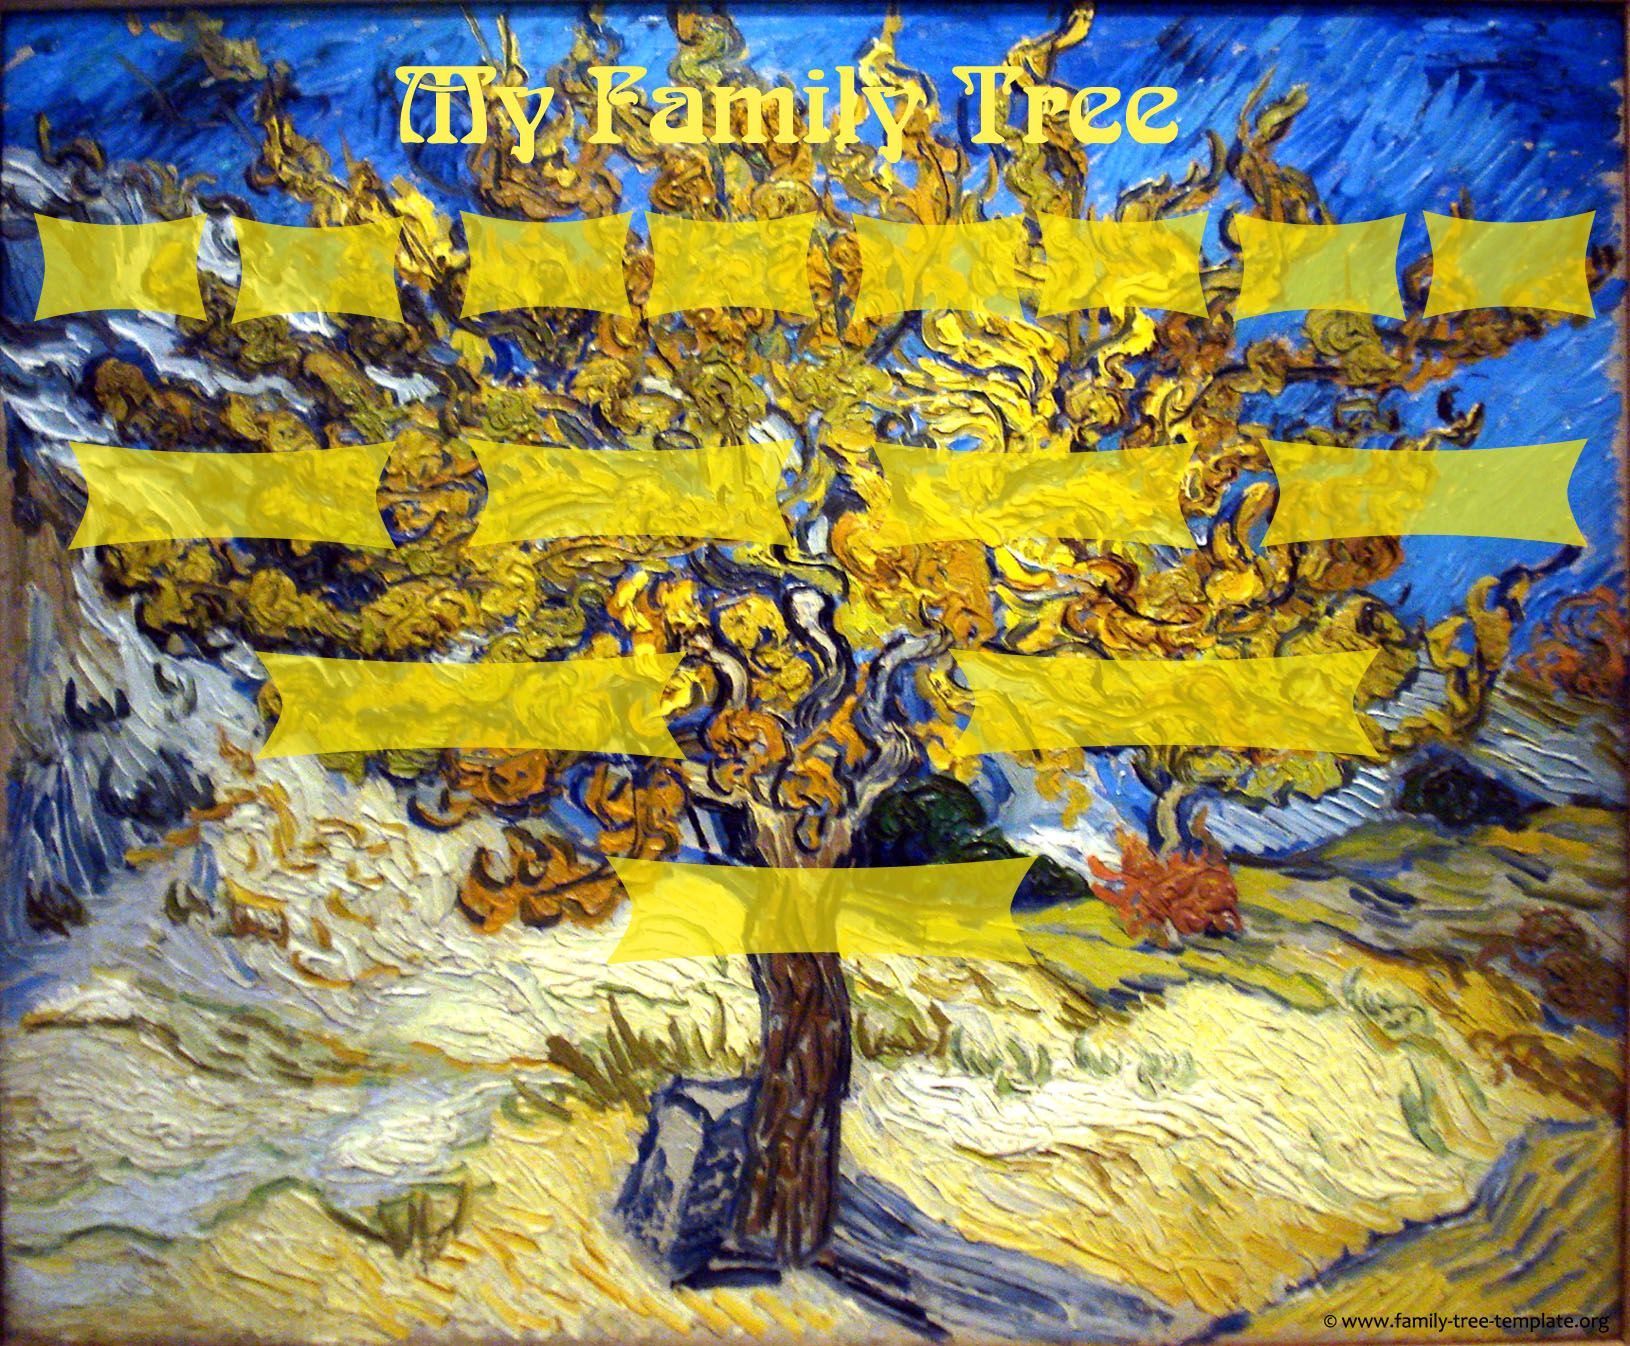 Van Gogh Mulberry tree as a family tree.